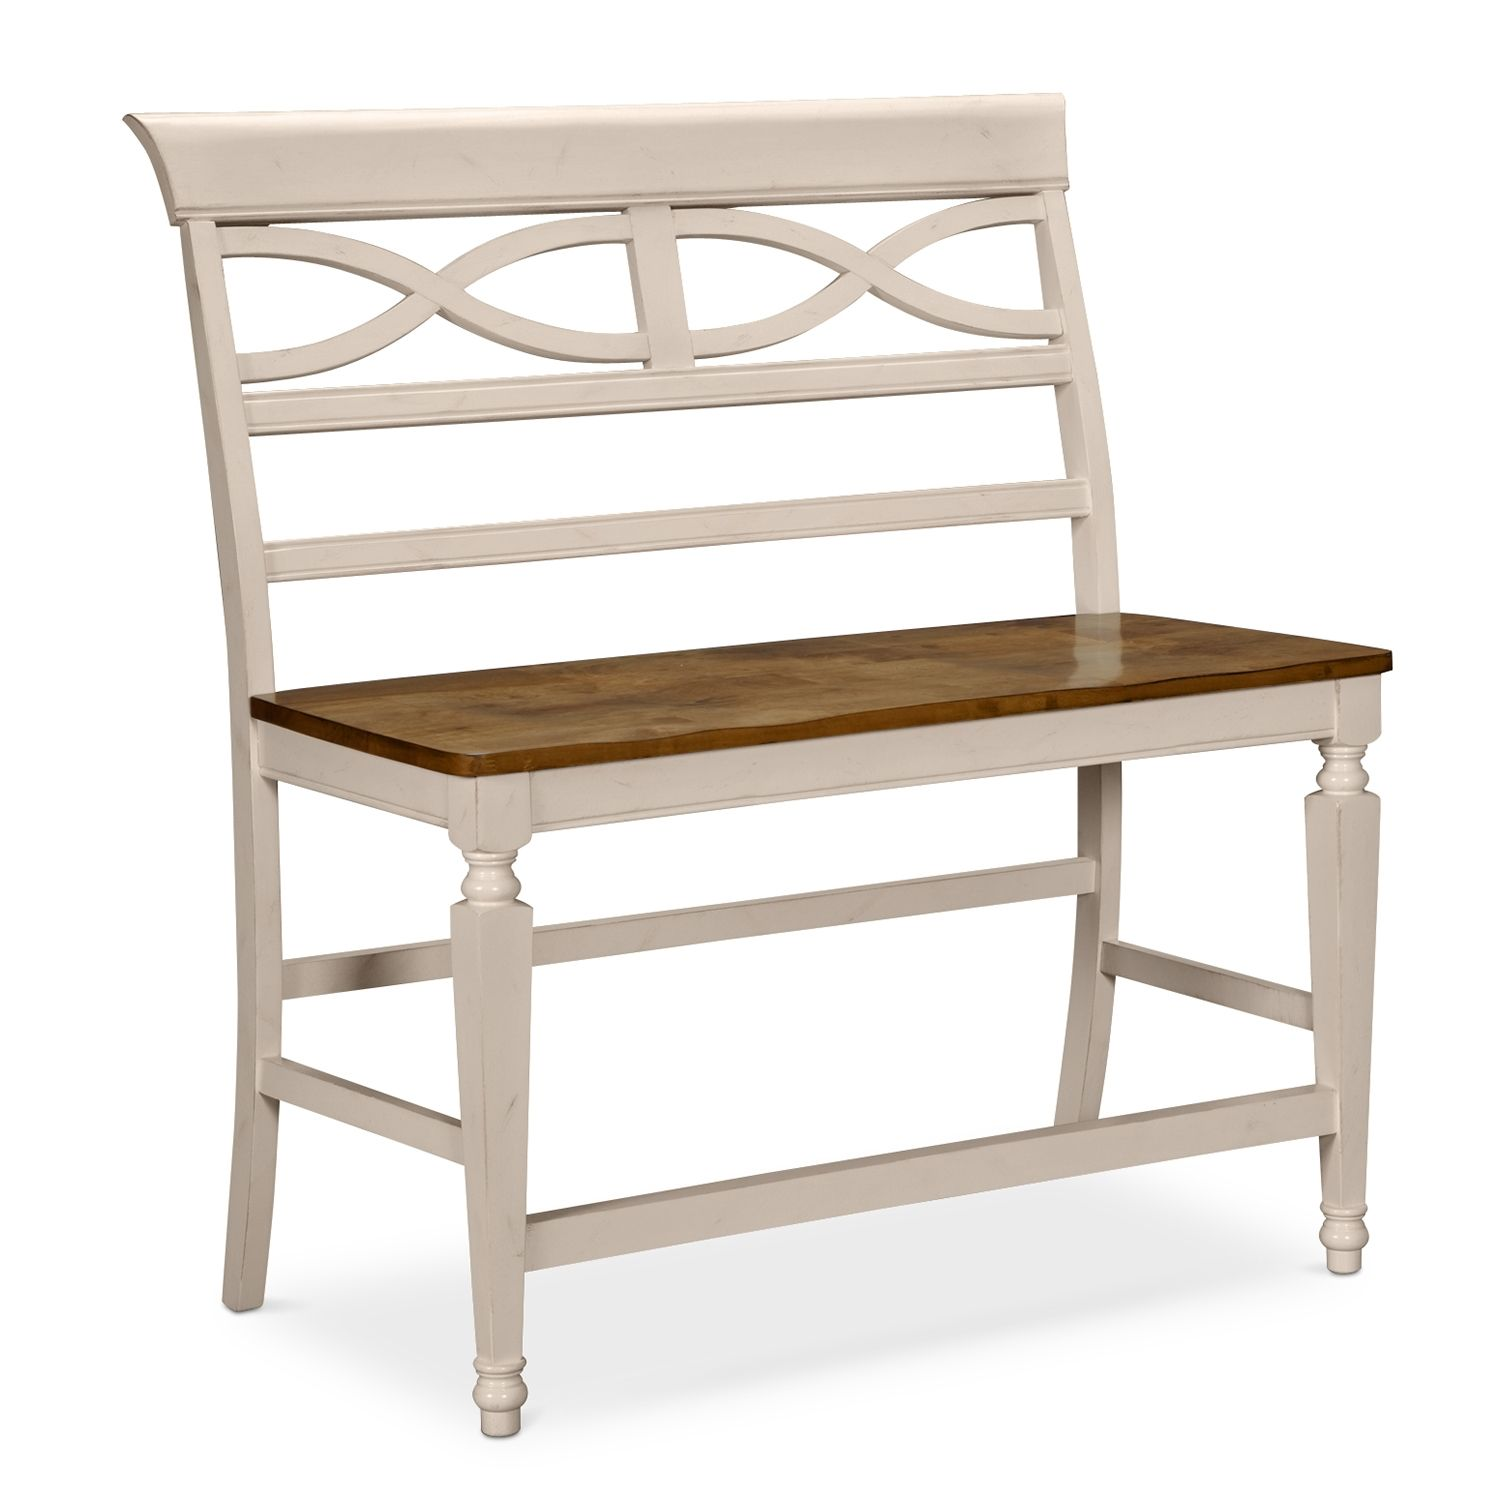 24999 Chesapeake II Dining Room Counter Height Bench